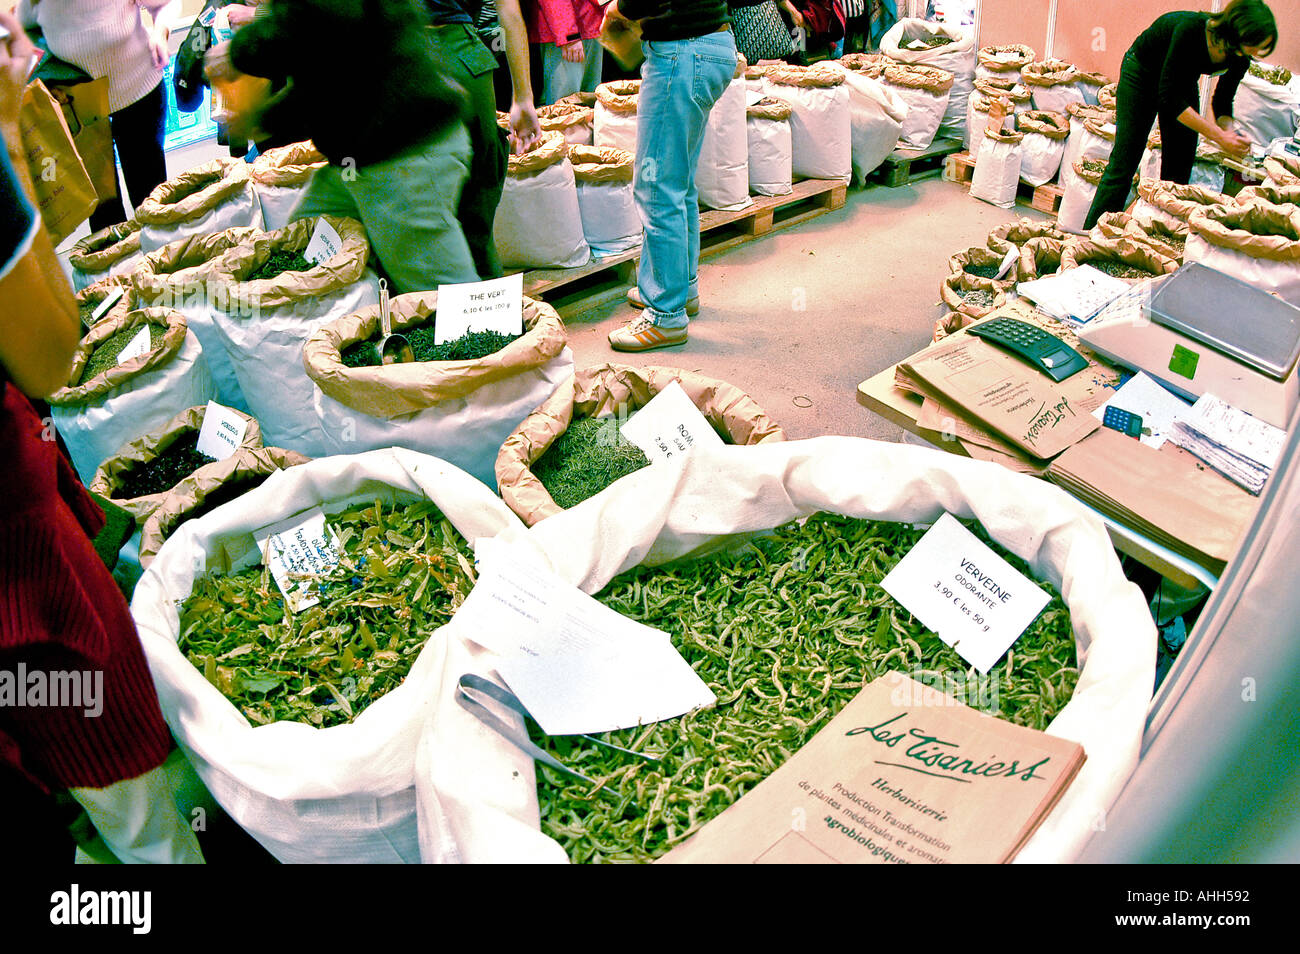 'Alternative Medicine' 'Herbal Medicines' Herbs for Sale at Exhibit in Paris France healthcare Natural Organic 'Trade Show' - Stock Image